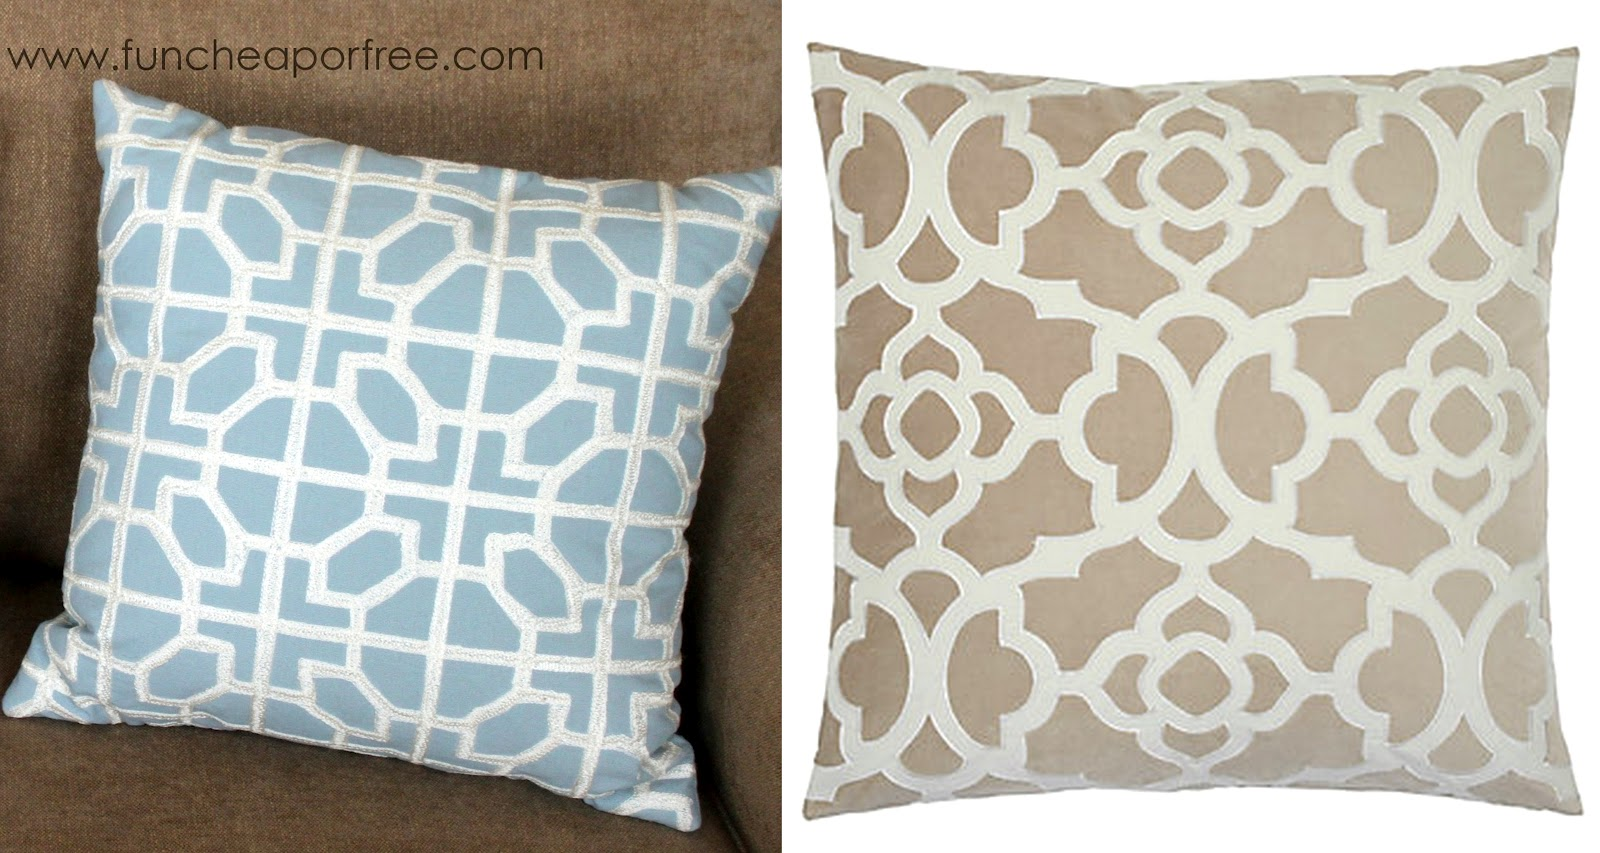 Throw Pillows At Tj Maxx : Steals and Deals segment: Get THE LOOK for less! Where to find great deals on throw pillows ...